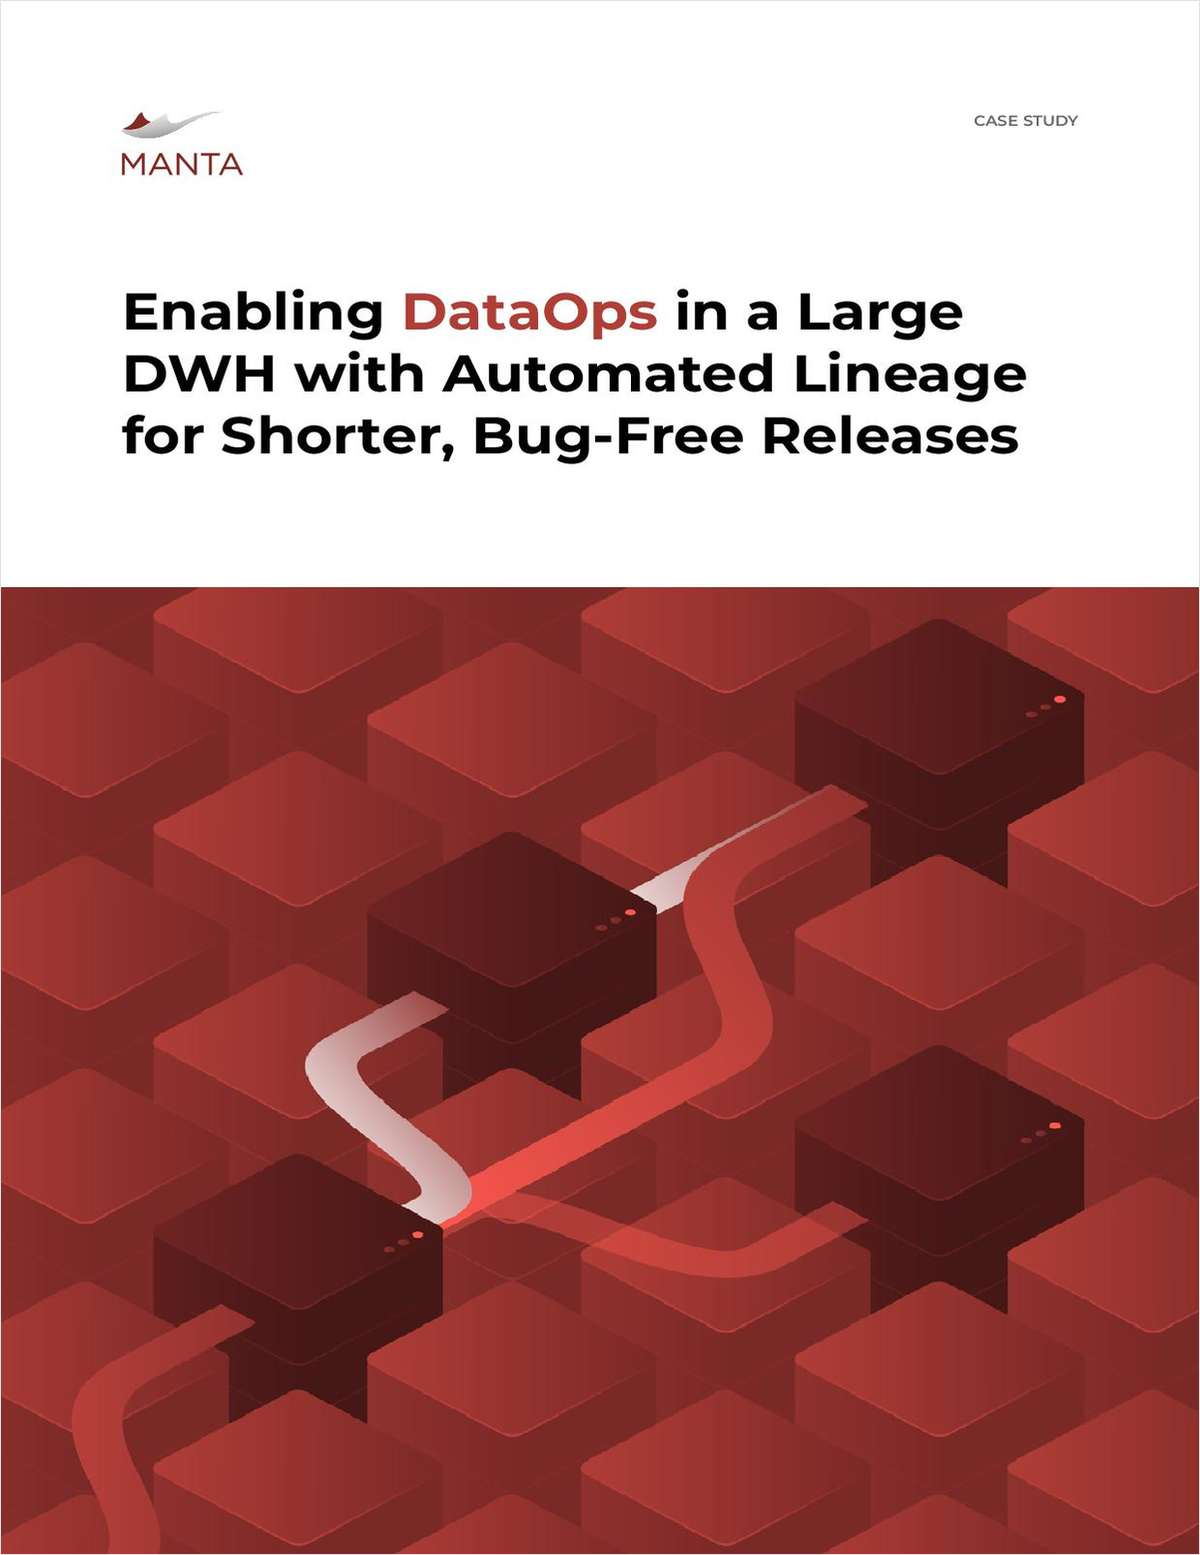 Enabling DataOps in a Large DWH with Automated Lineage for Shorter, Bug-Free Releases